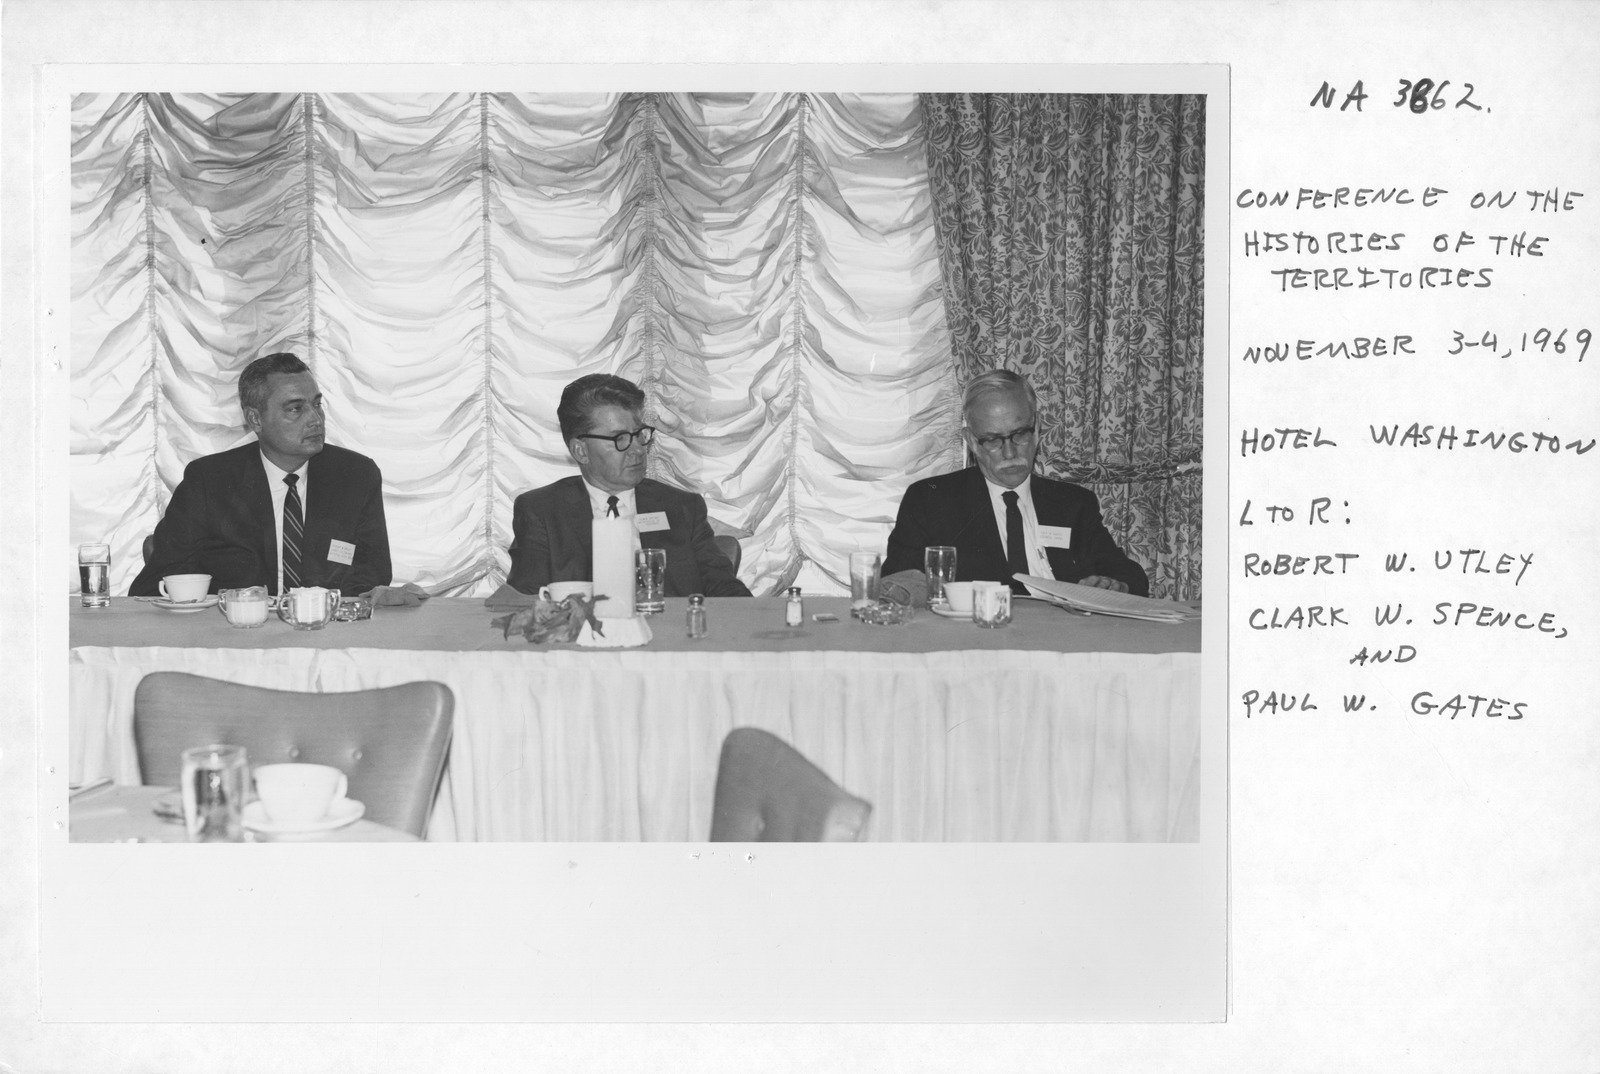 Photograph of the Conference on the History of the Territories